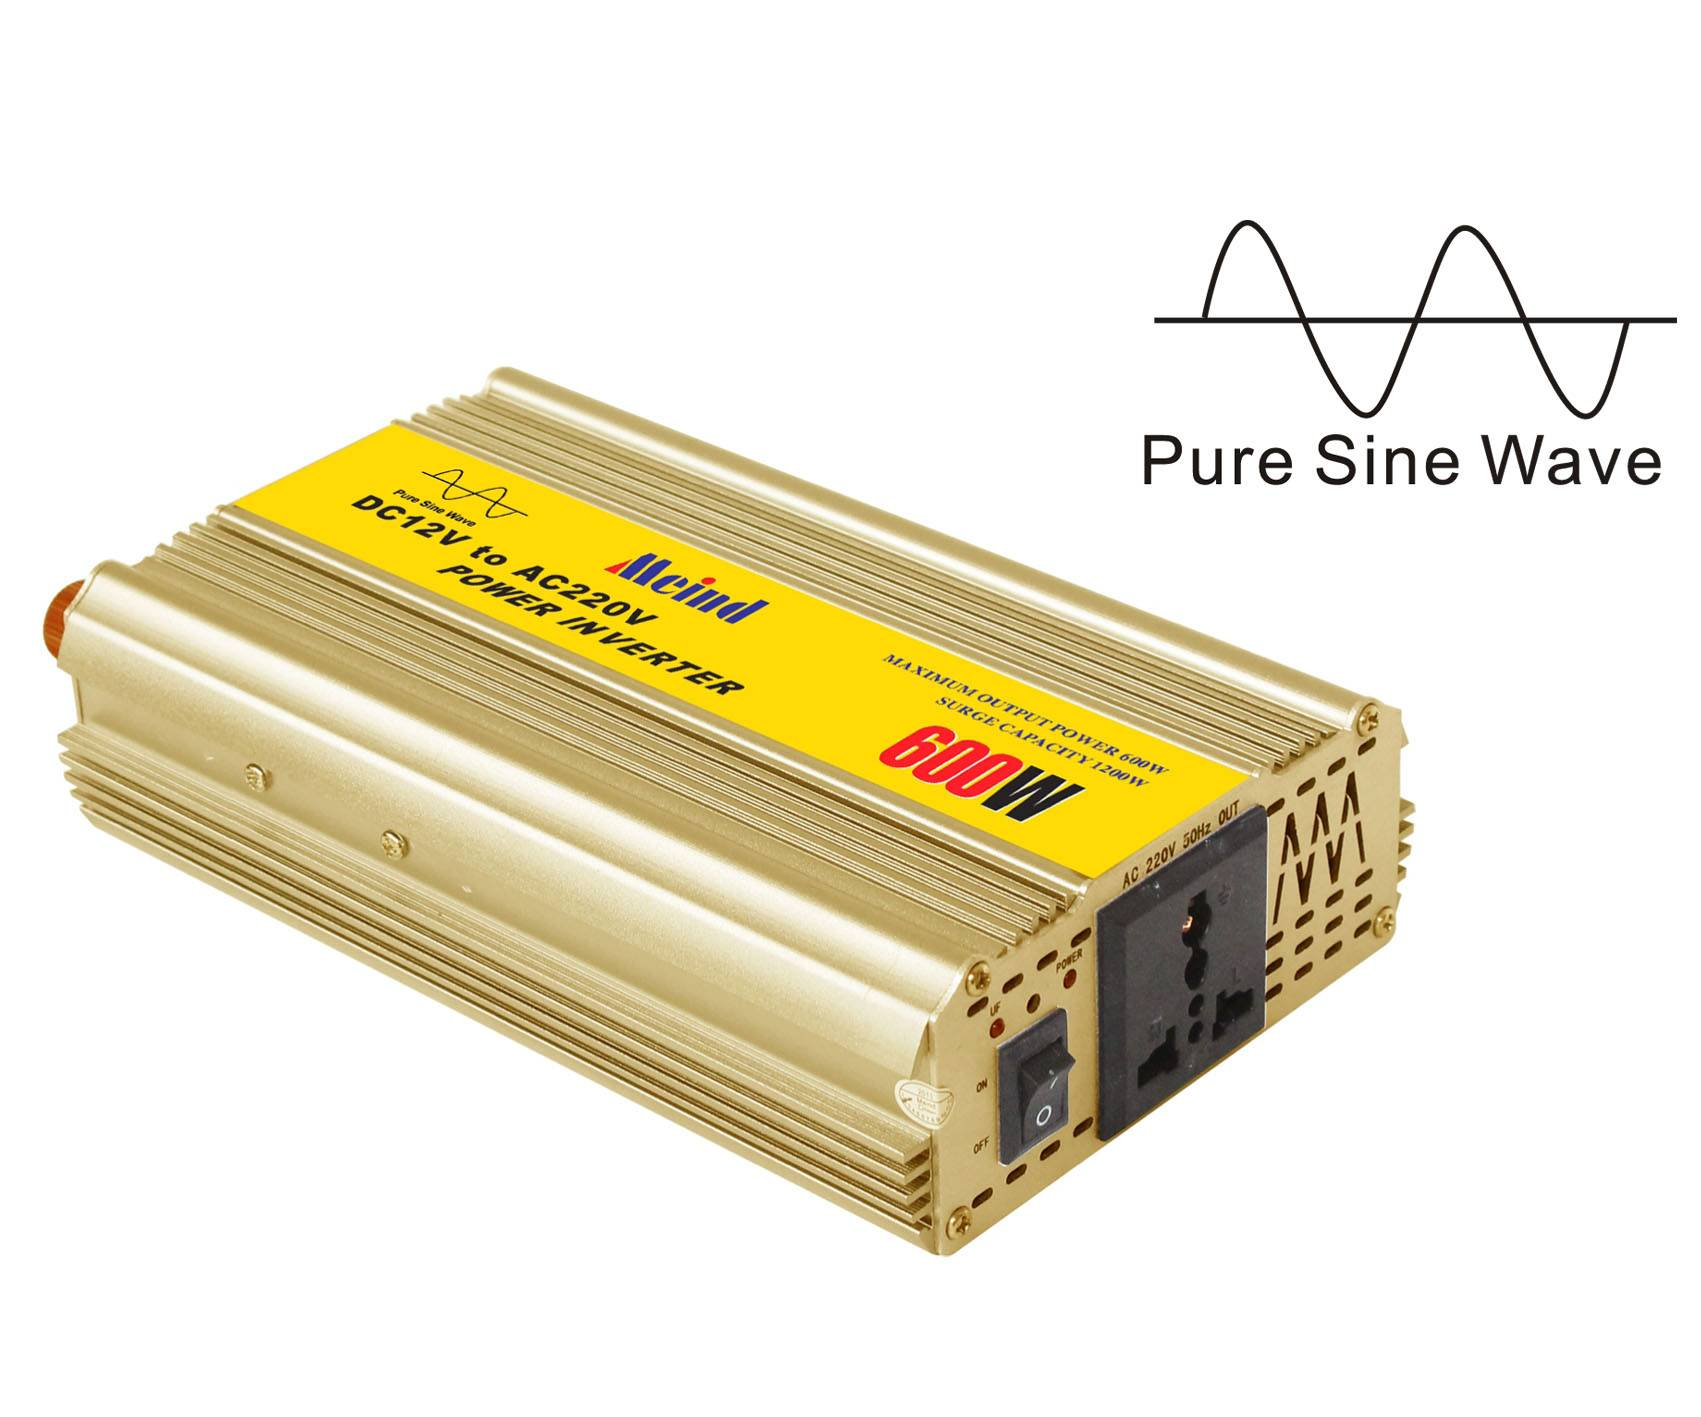 Meind 500W Pure Sine Wave Inverter for home,car,solar off grid system,etc